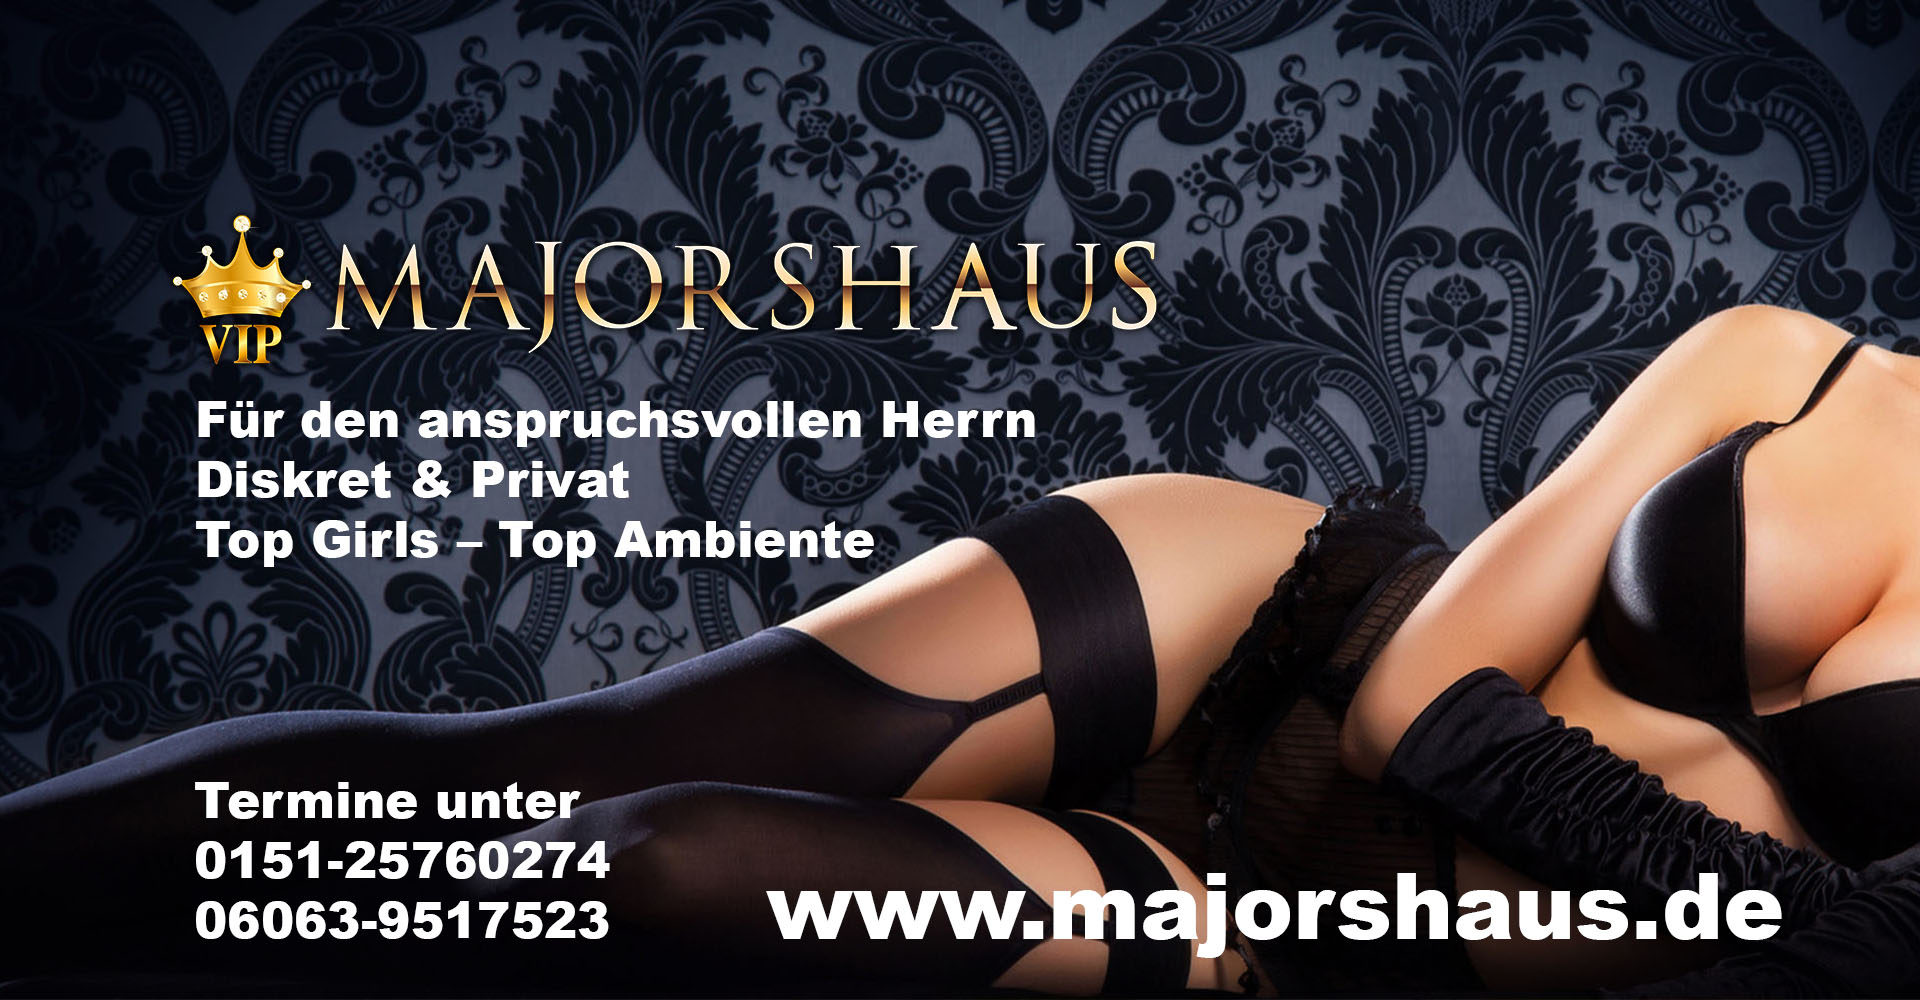 shemale frankfurt swinger club hamburg